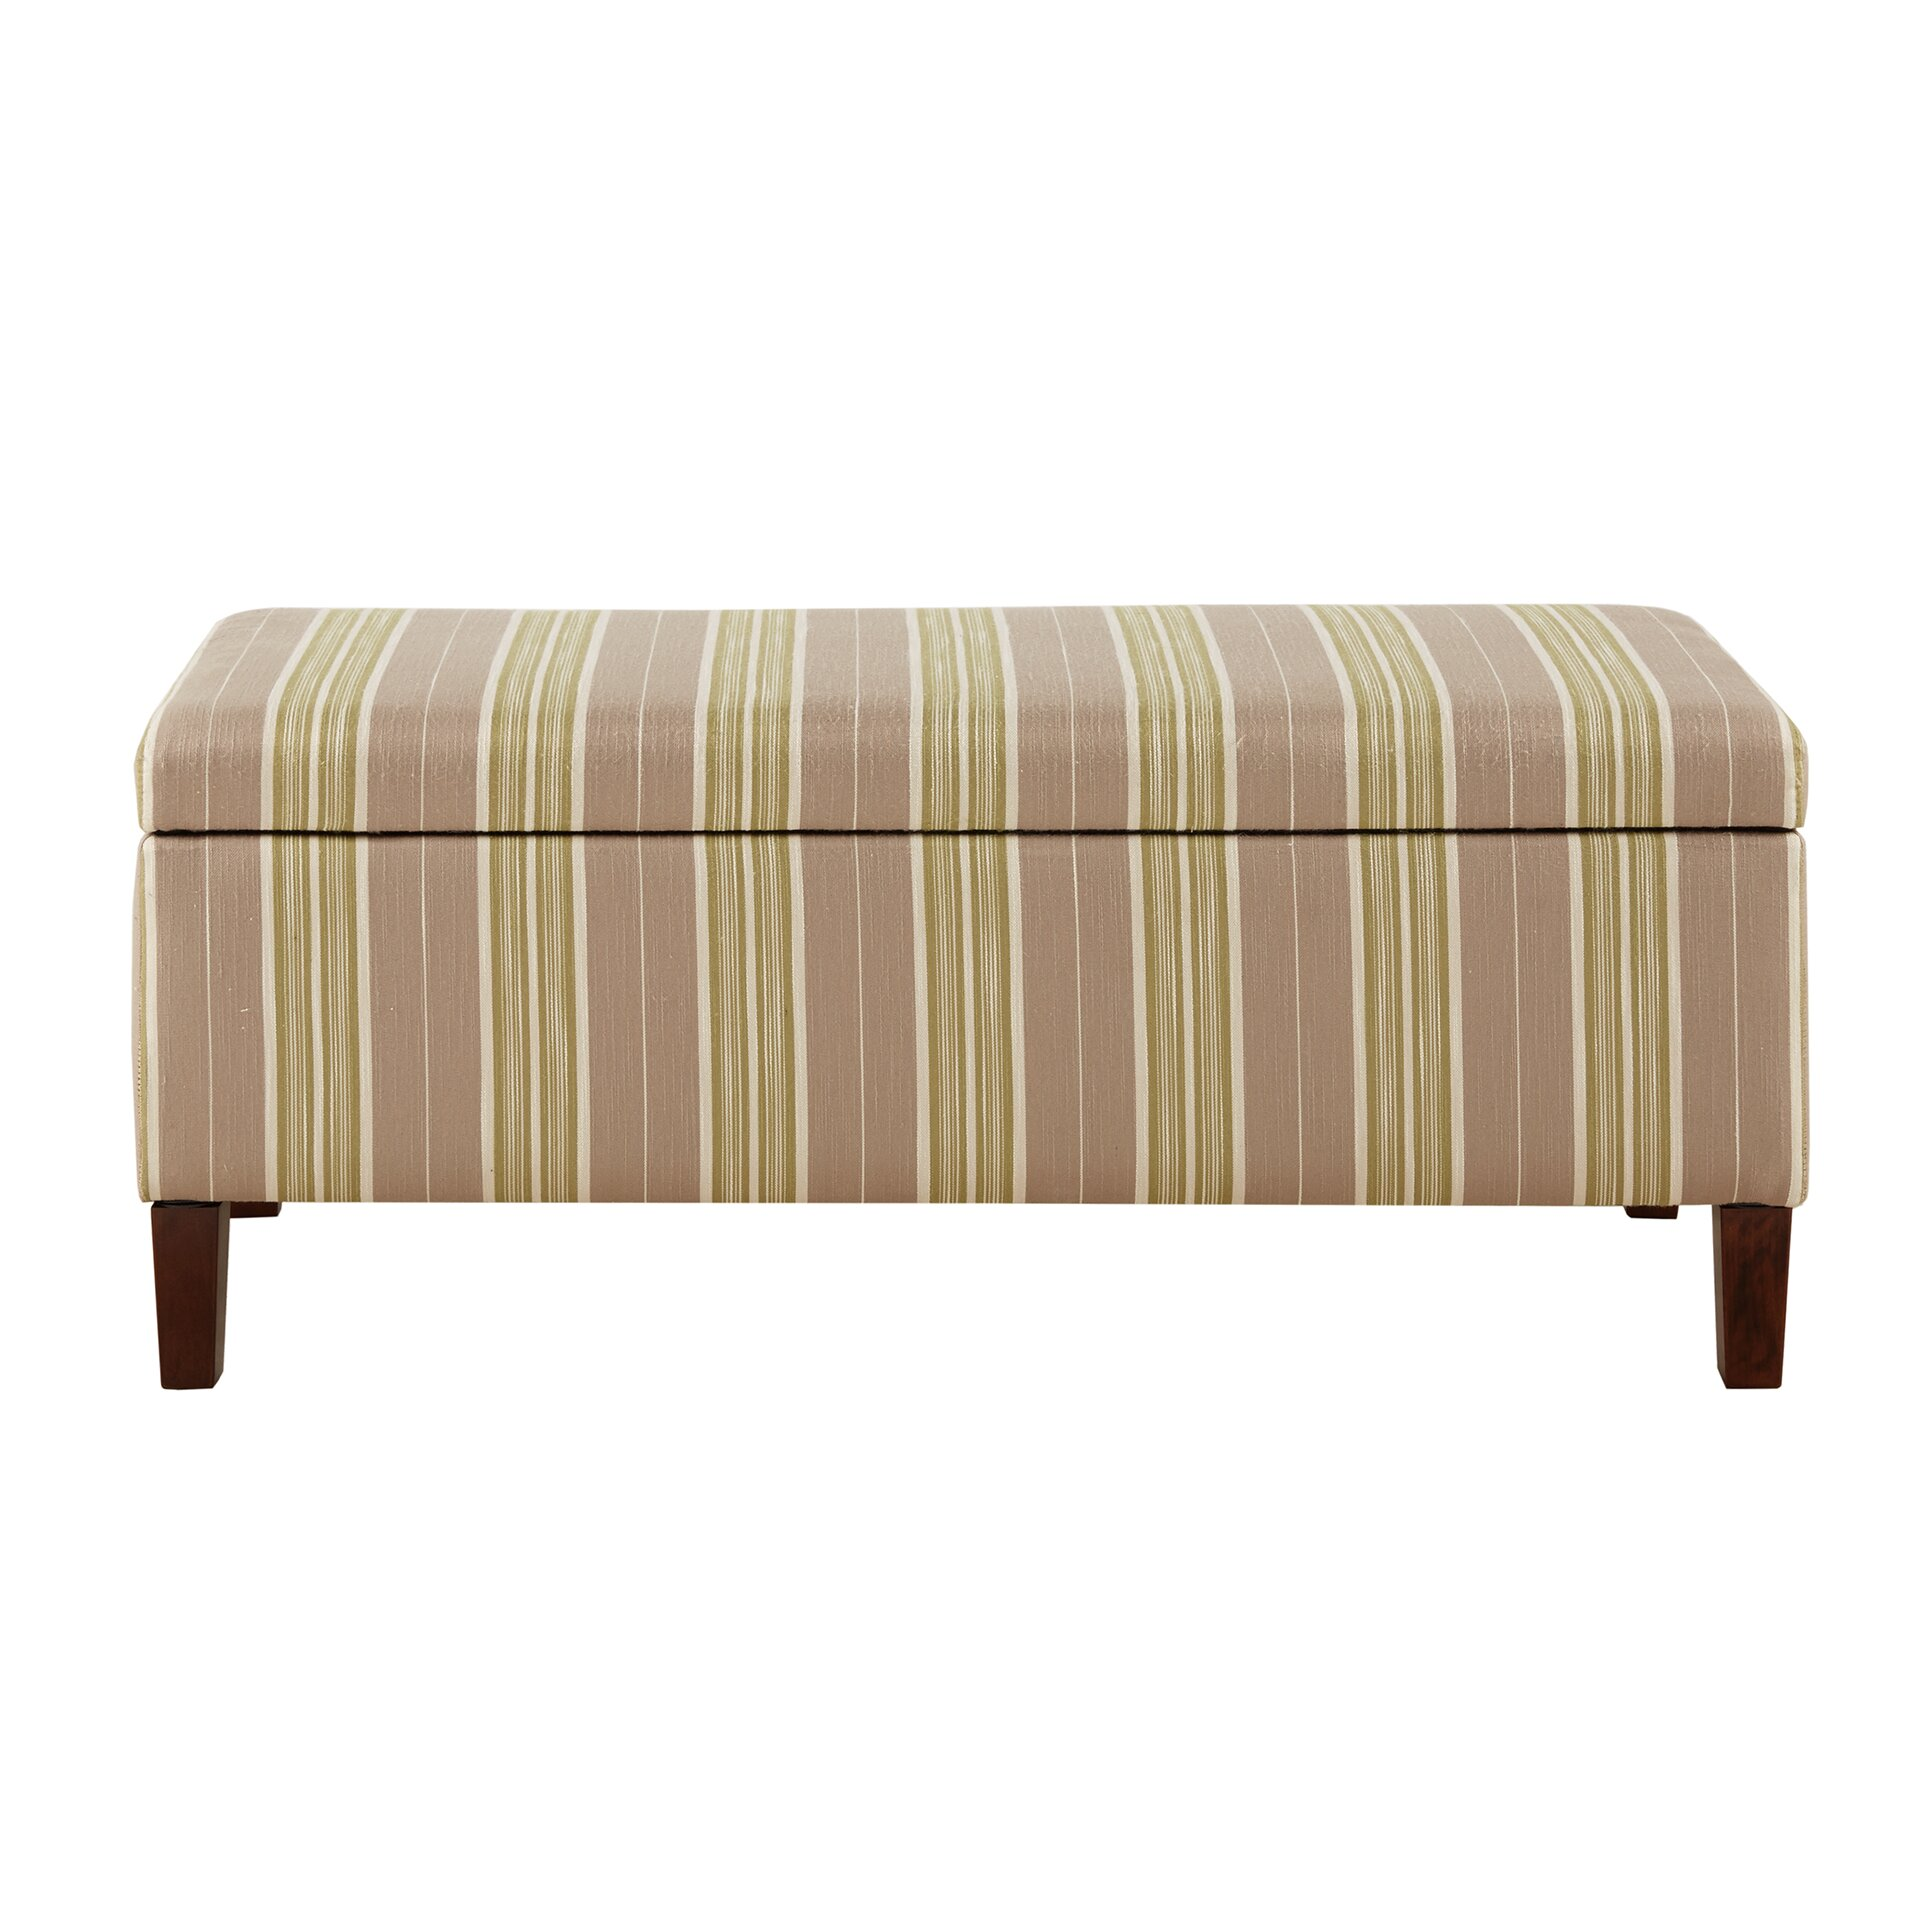 Charlton Home Chavers Upholstered Storage Entryway Bench